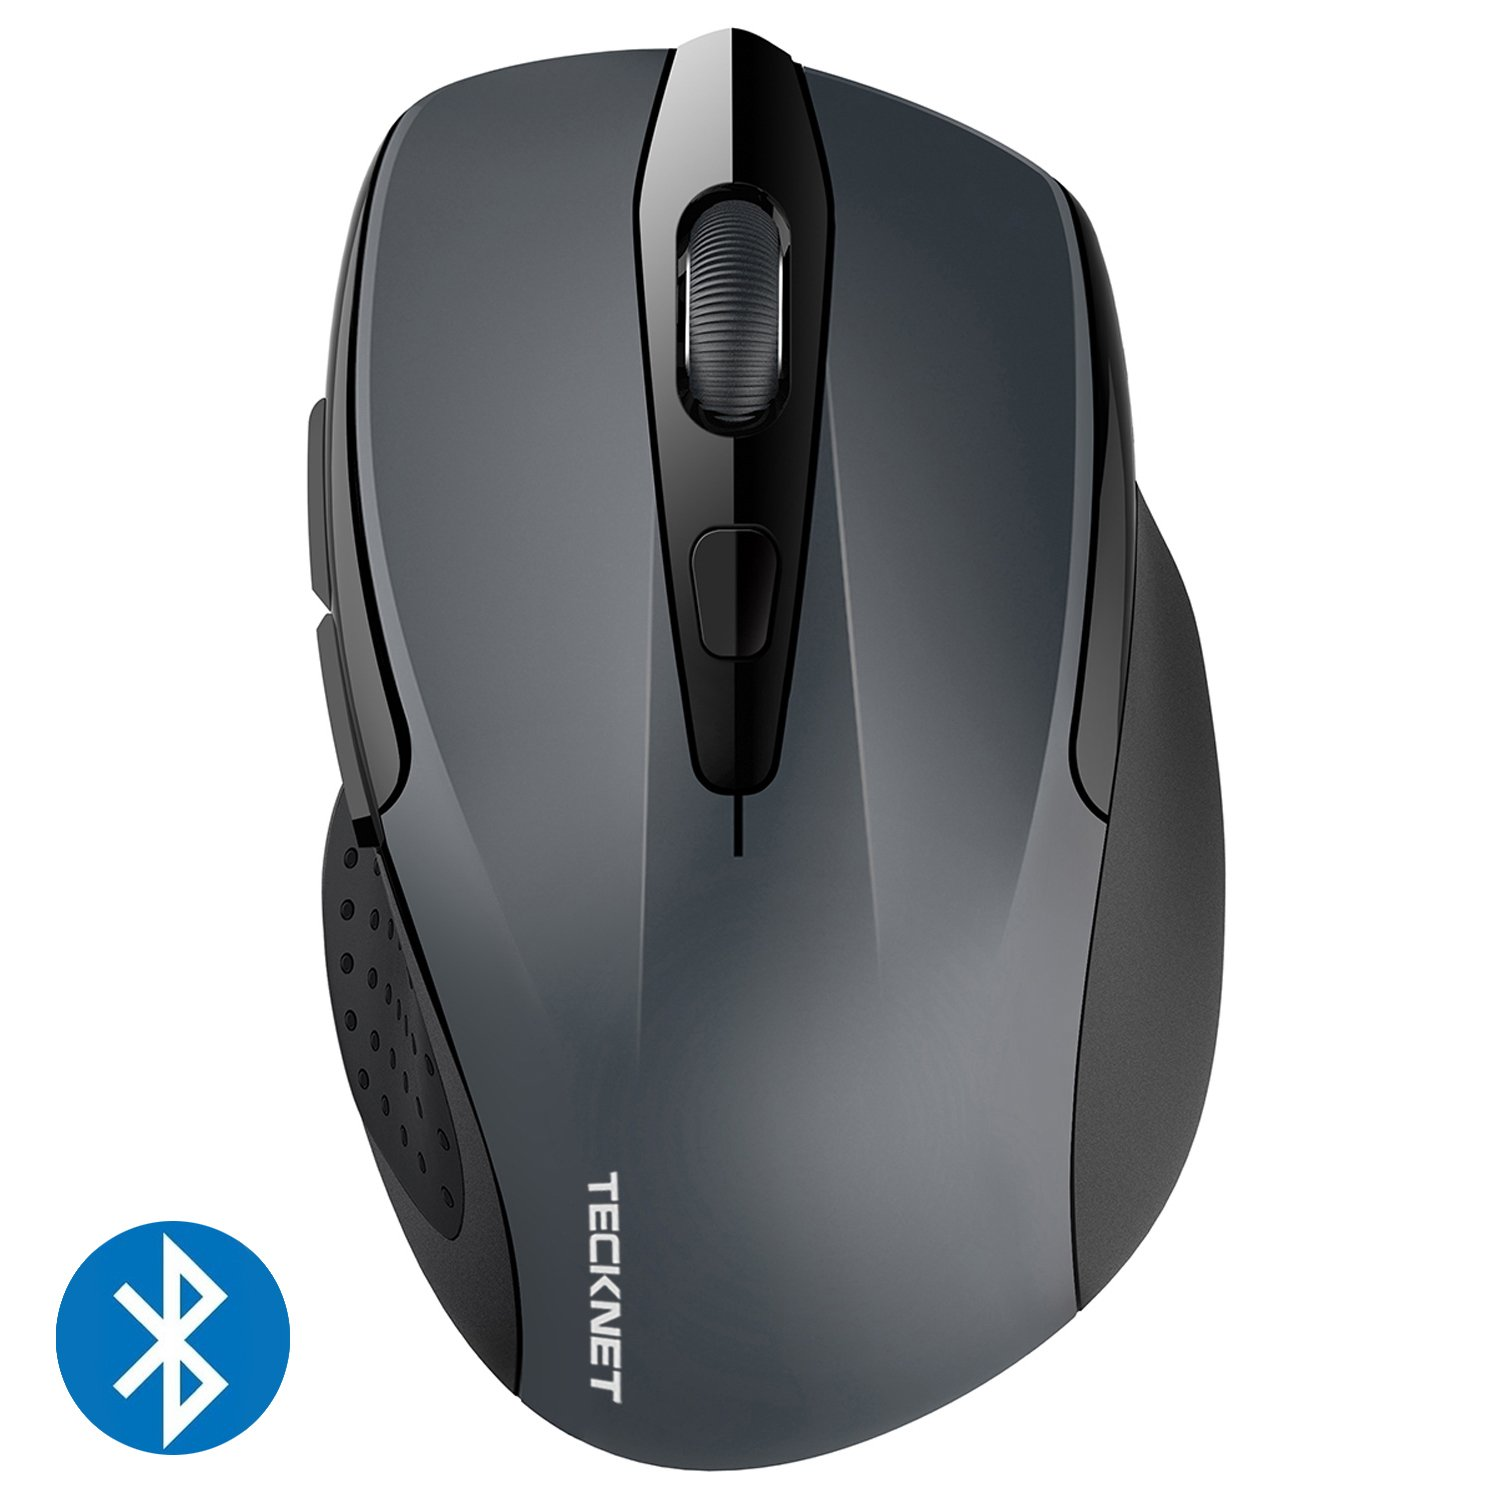 TeckNet 2600DPI Bluetooth Wireless Mouse, 24 Months Battery Life with Battery Indicator, 2600/2000/1600/1200/800DPI